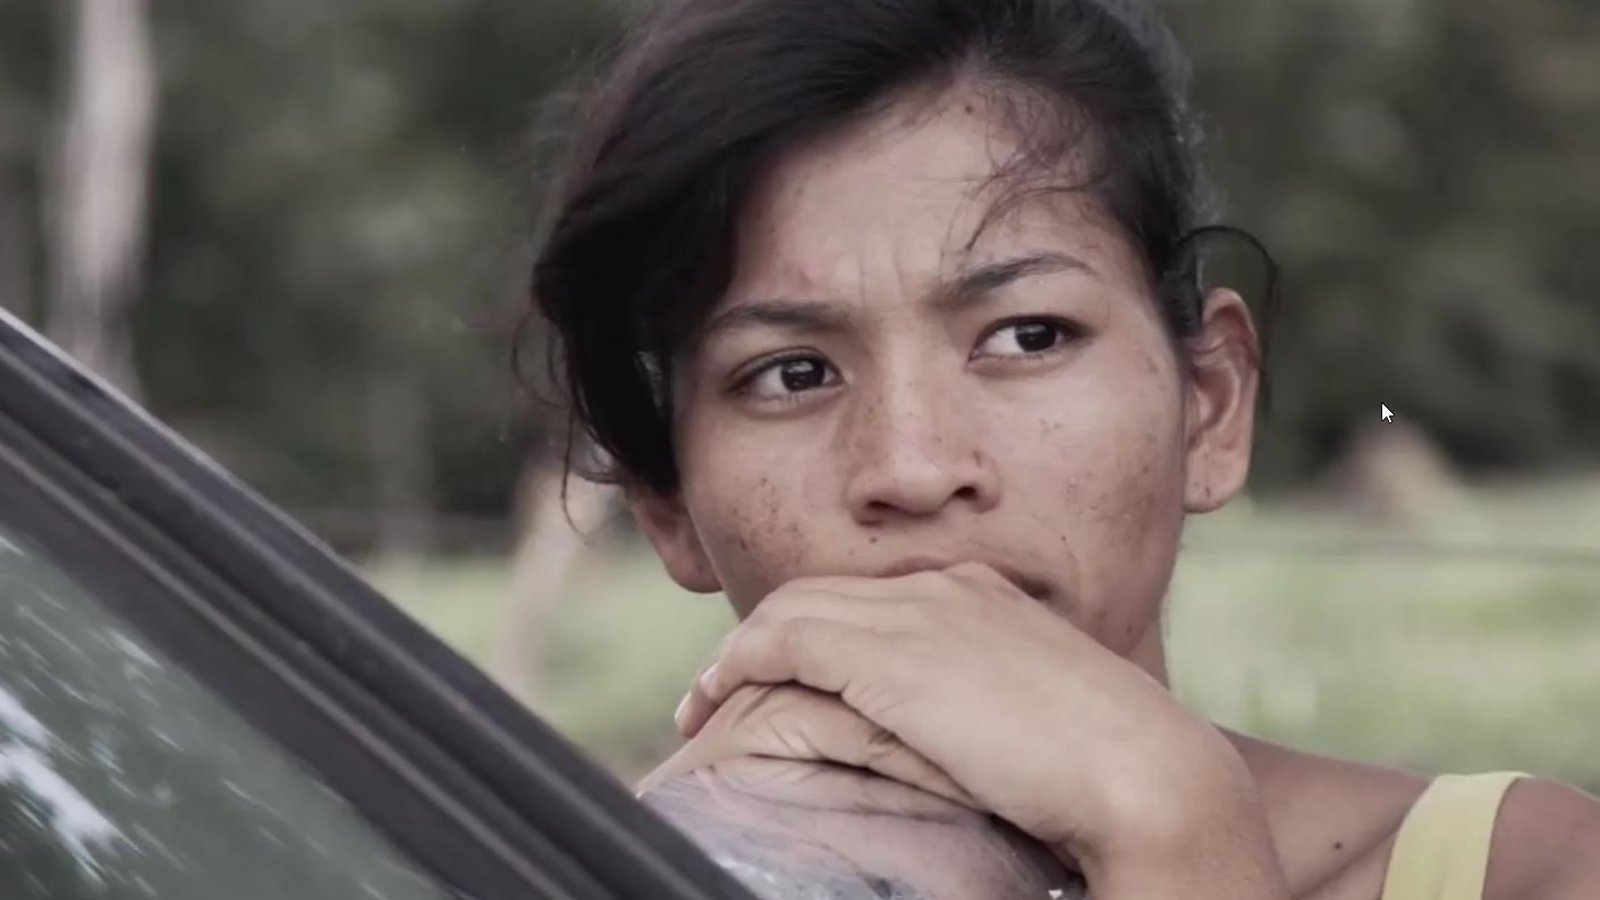 Taego āwa - An Indigenous Tribe Views Footage of their Own